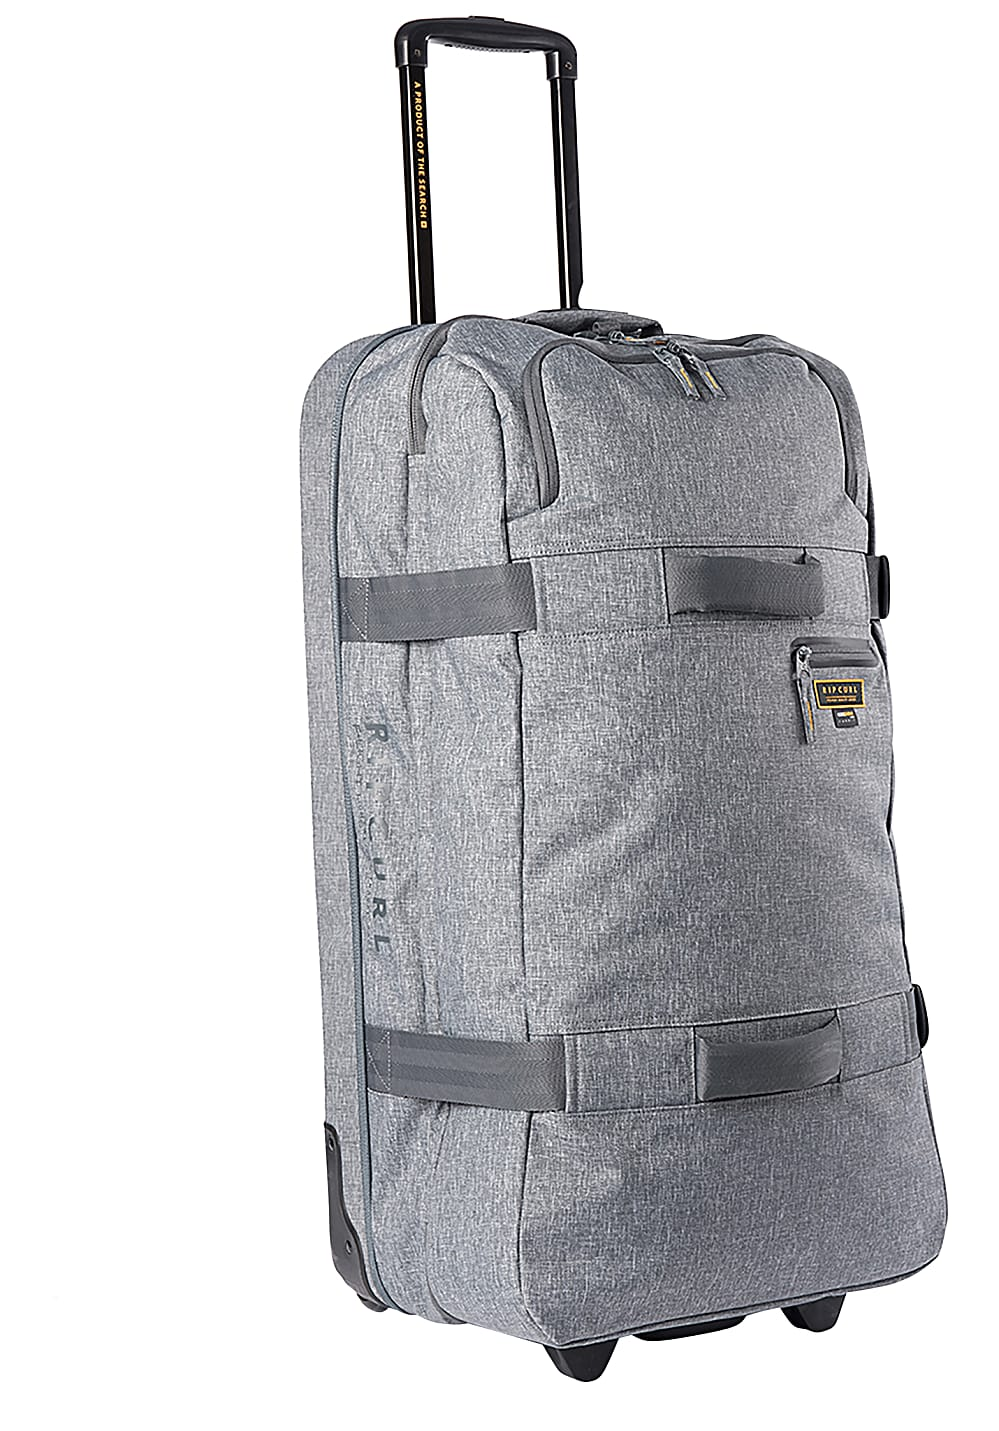 Rip Curl F-Light Global Cordura 100L Reisetasche - Grau